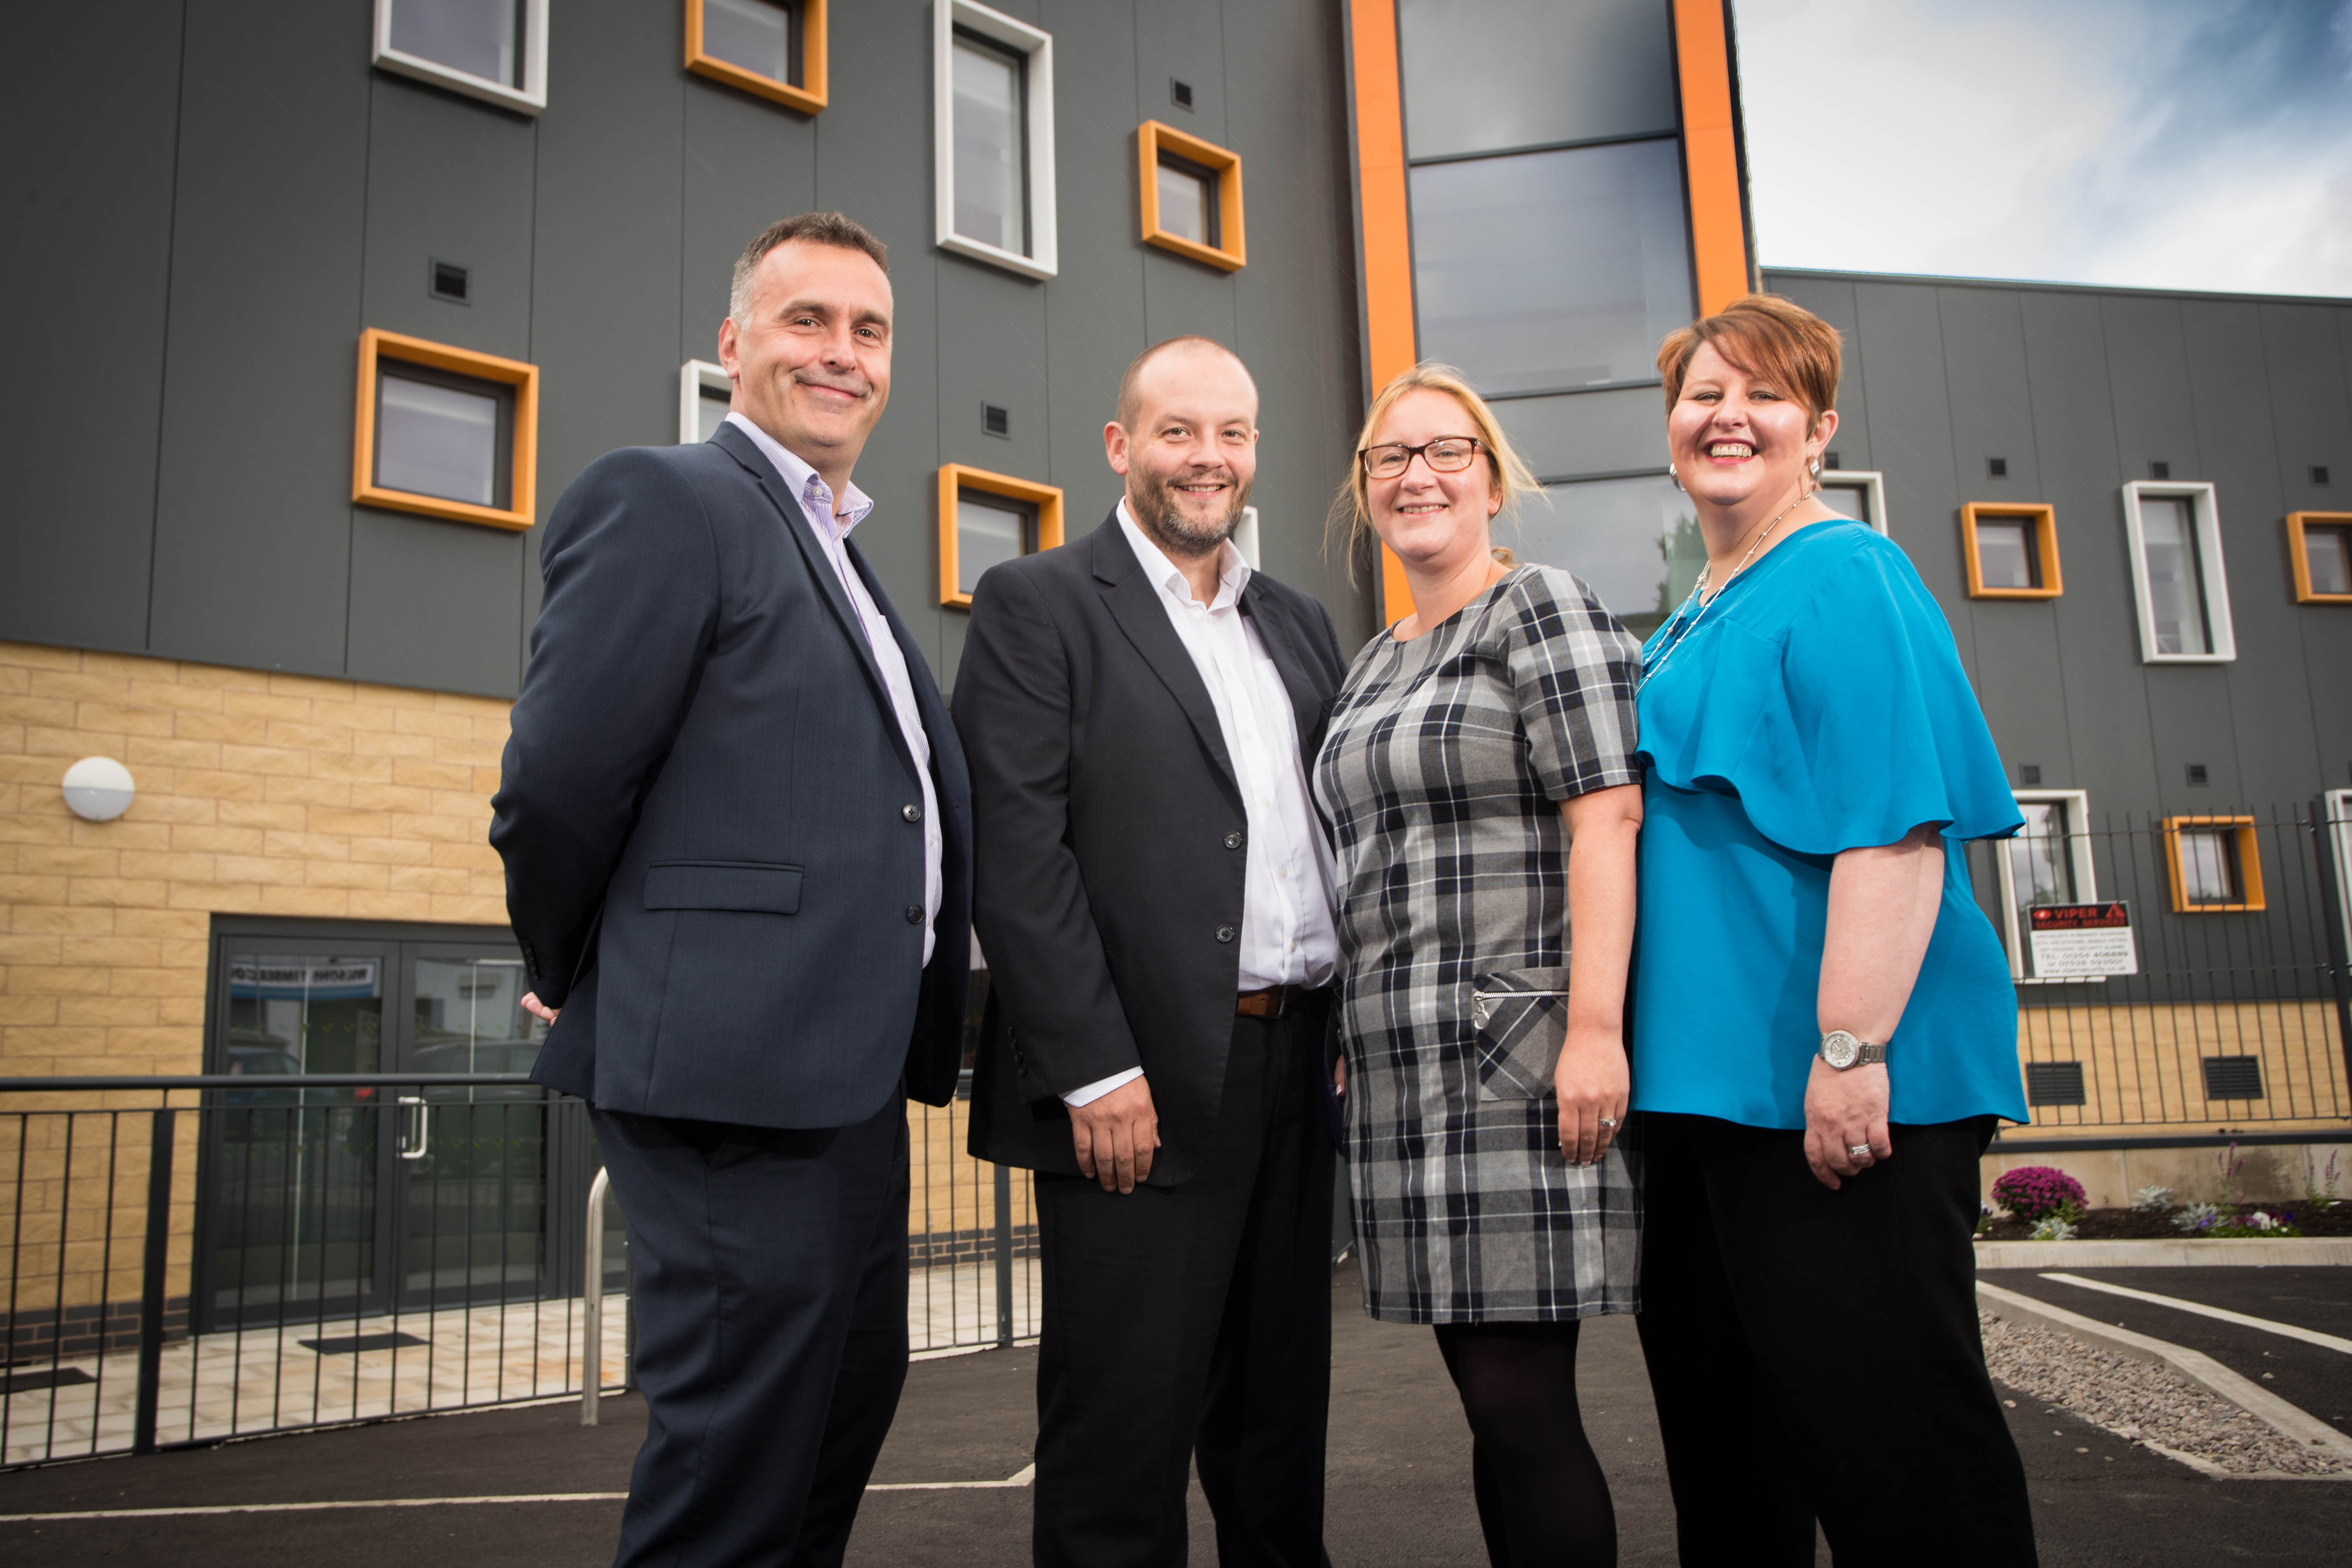 The Calico Group opens £3.5m flagship wellbeing centre for homeless and vulnerable people